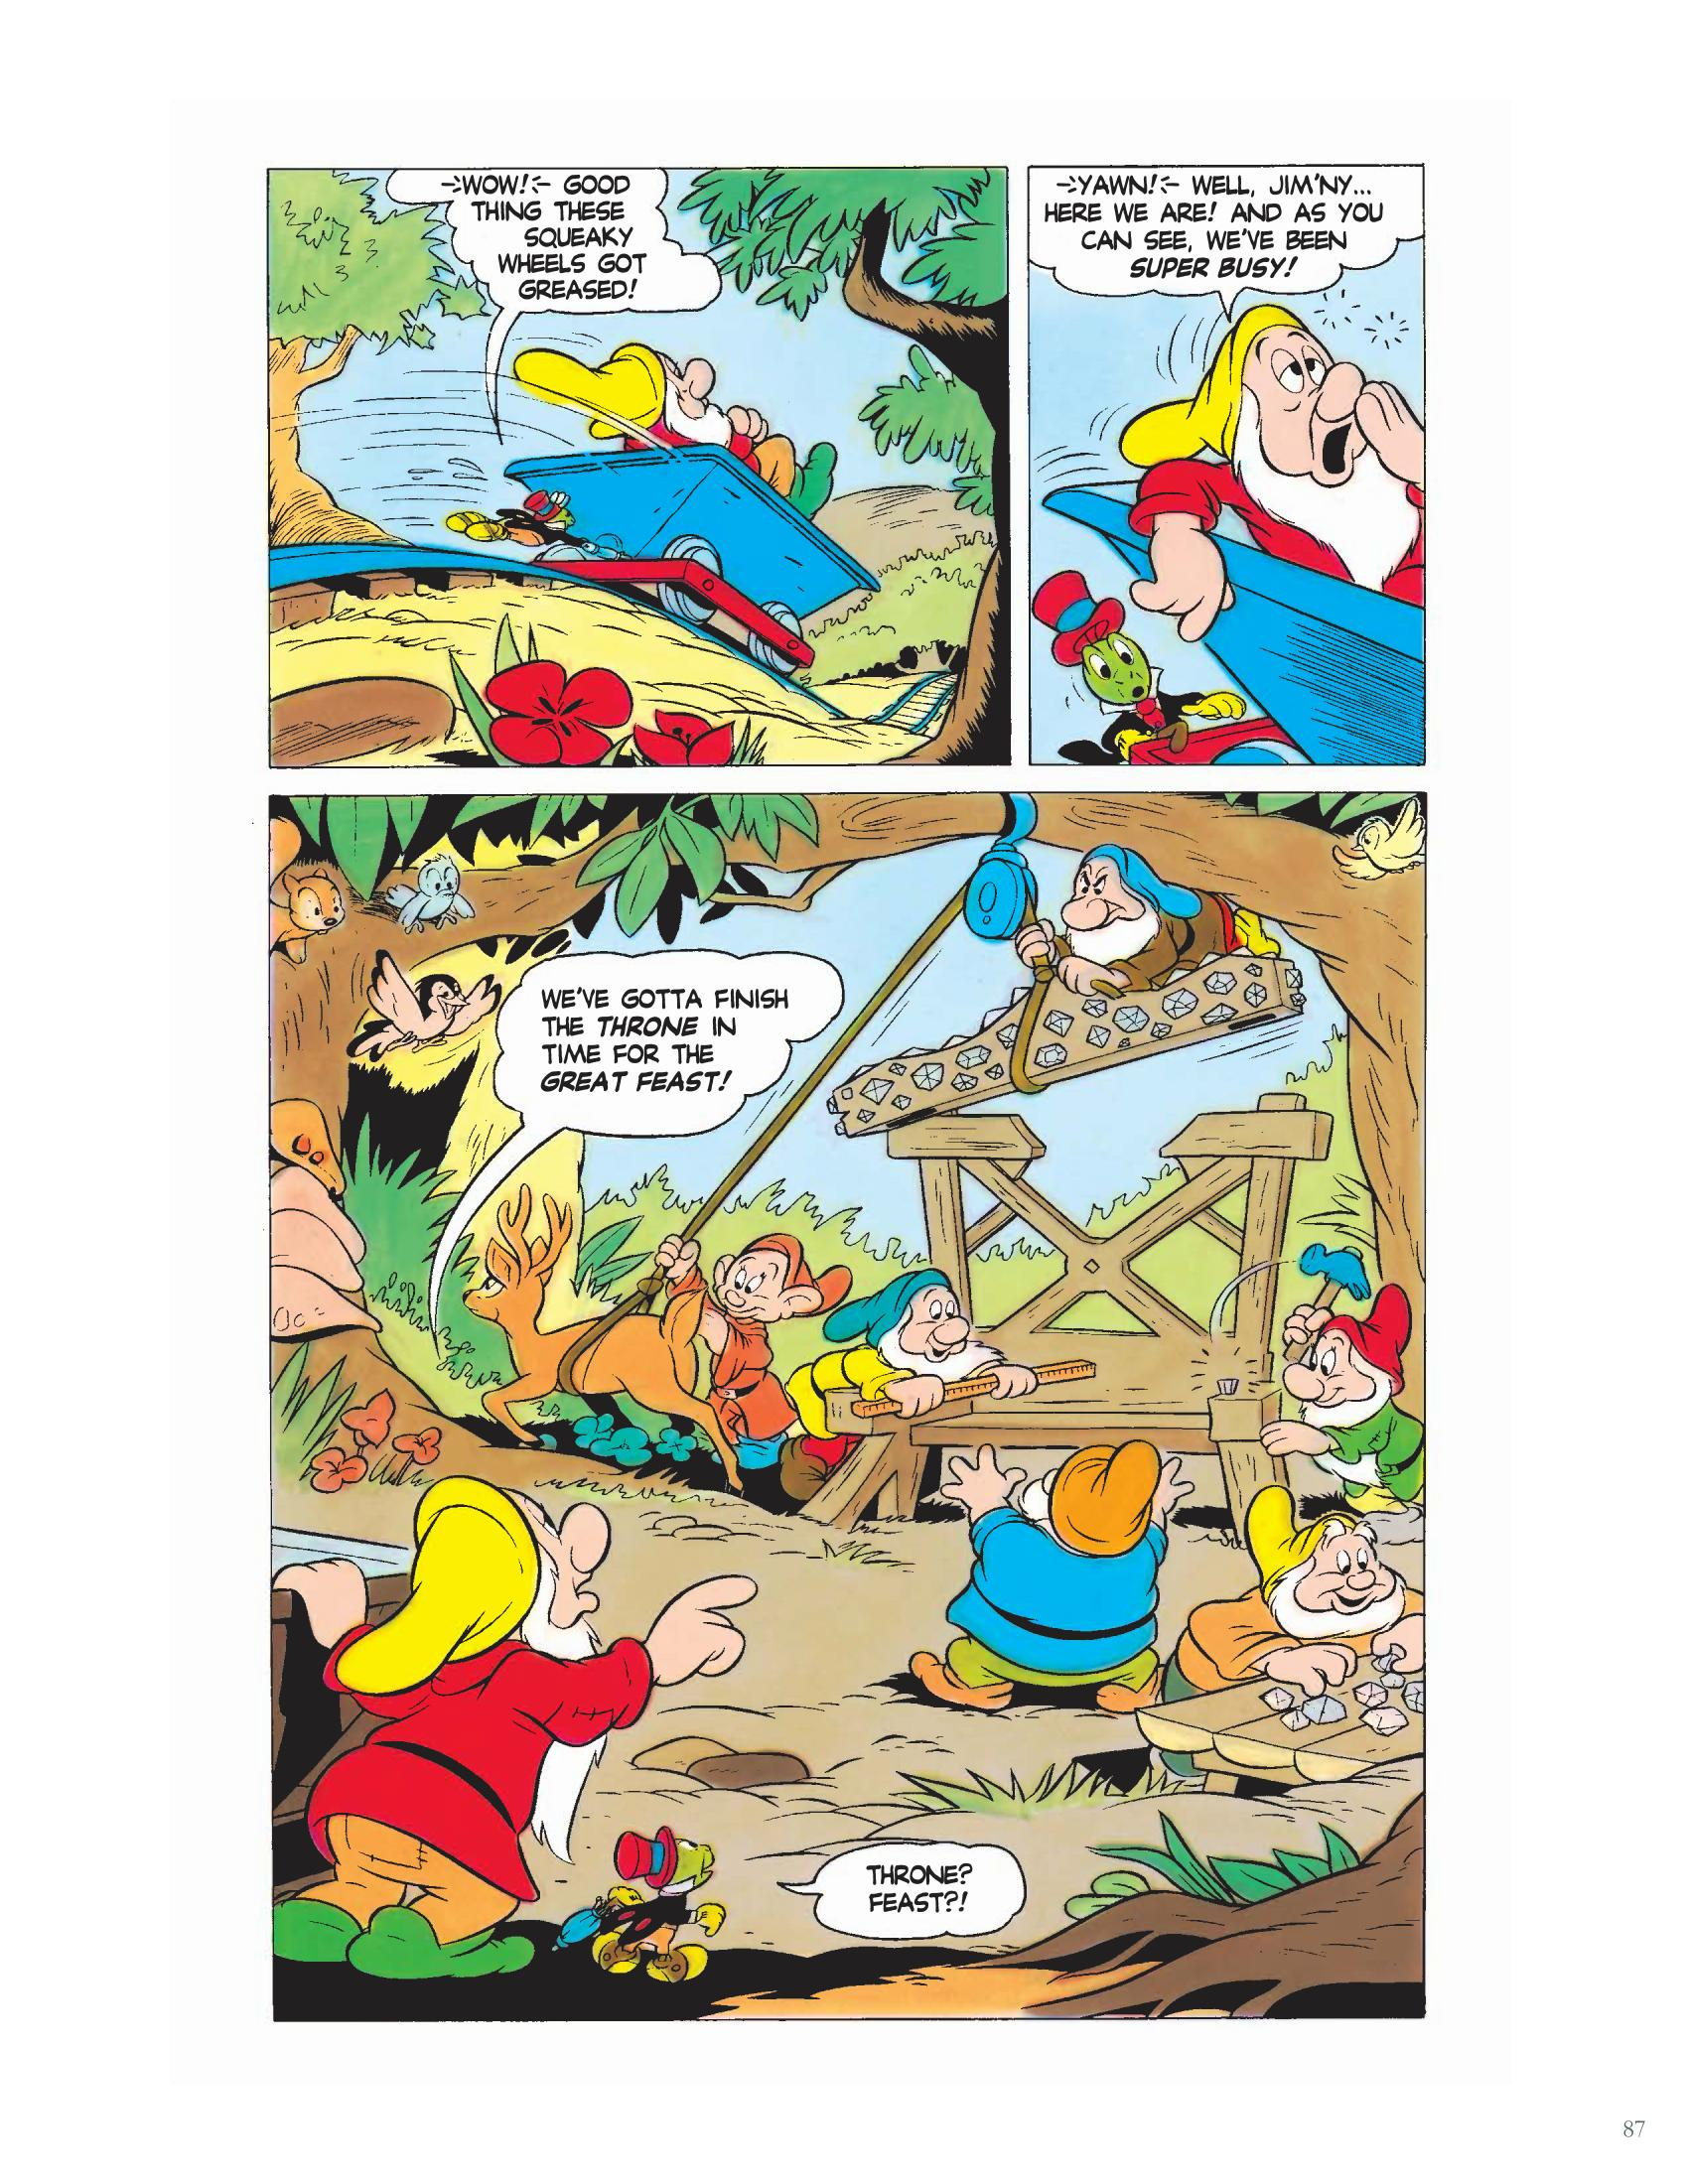 The Return of Snow White and the Seven Dwarfs review